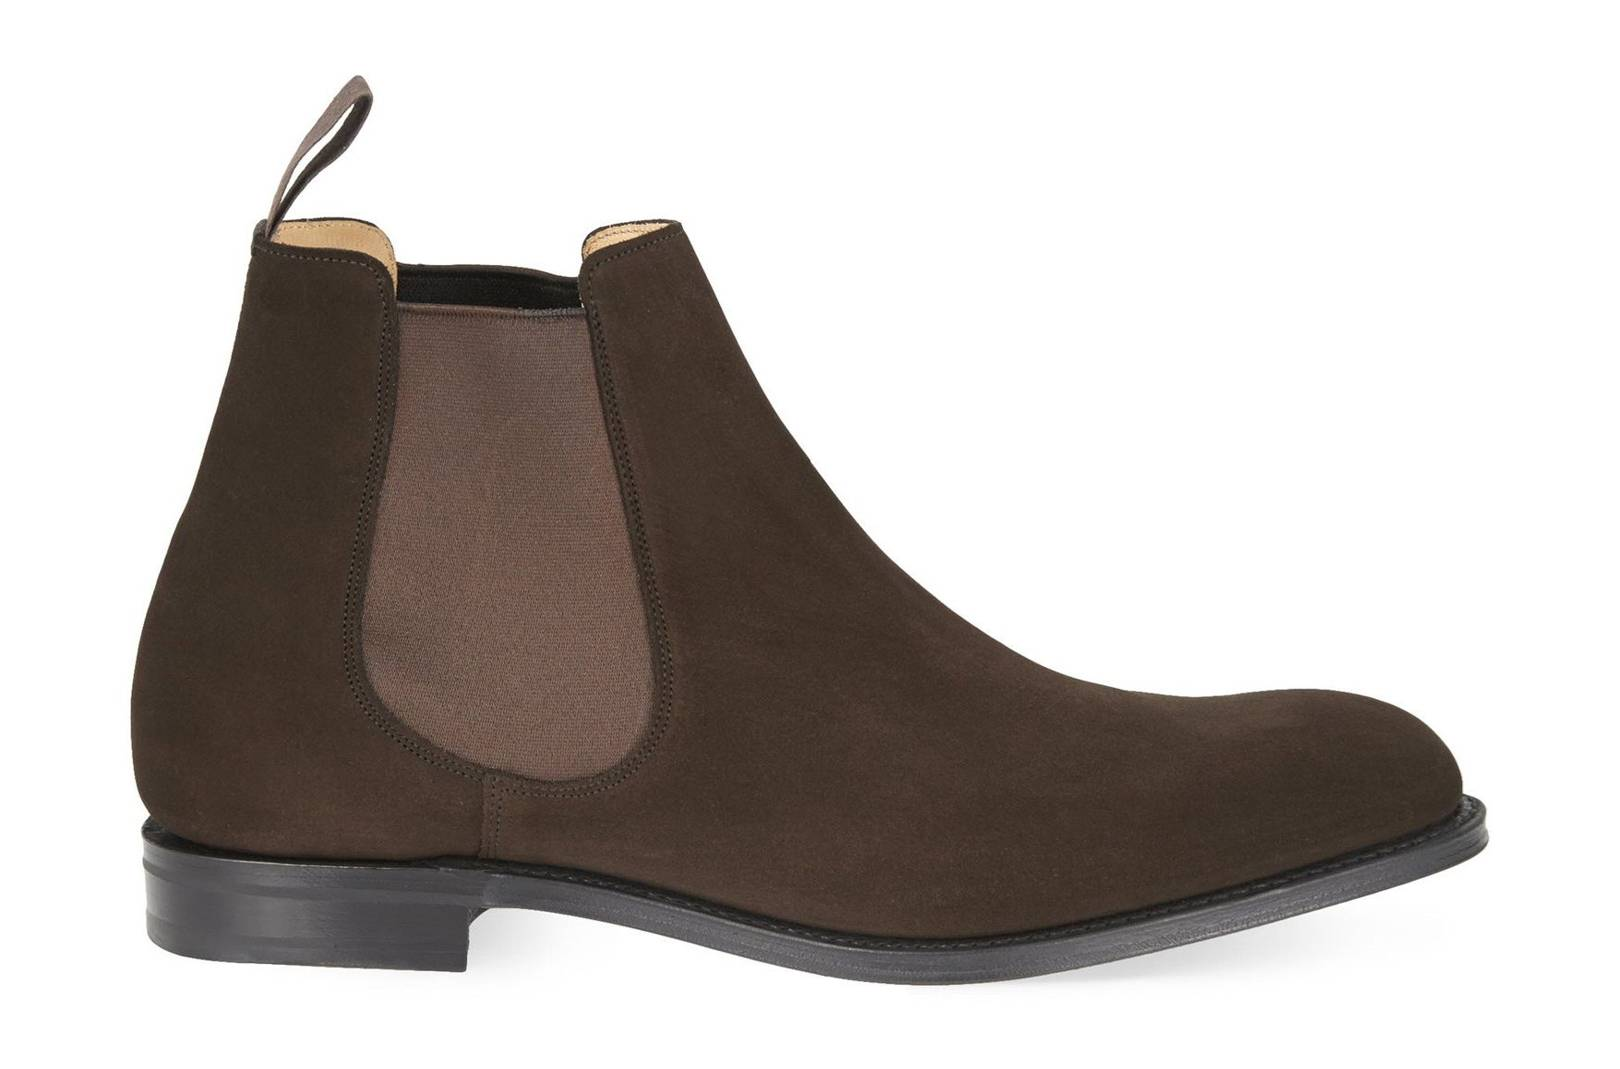 94bf2cc3c1 14 of the best suede Chelsea boots for autumn | British GQ